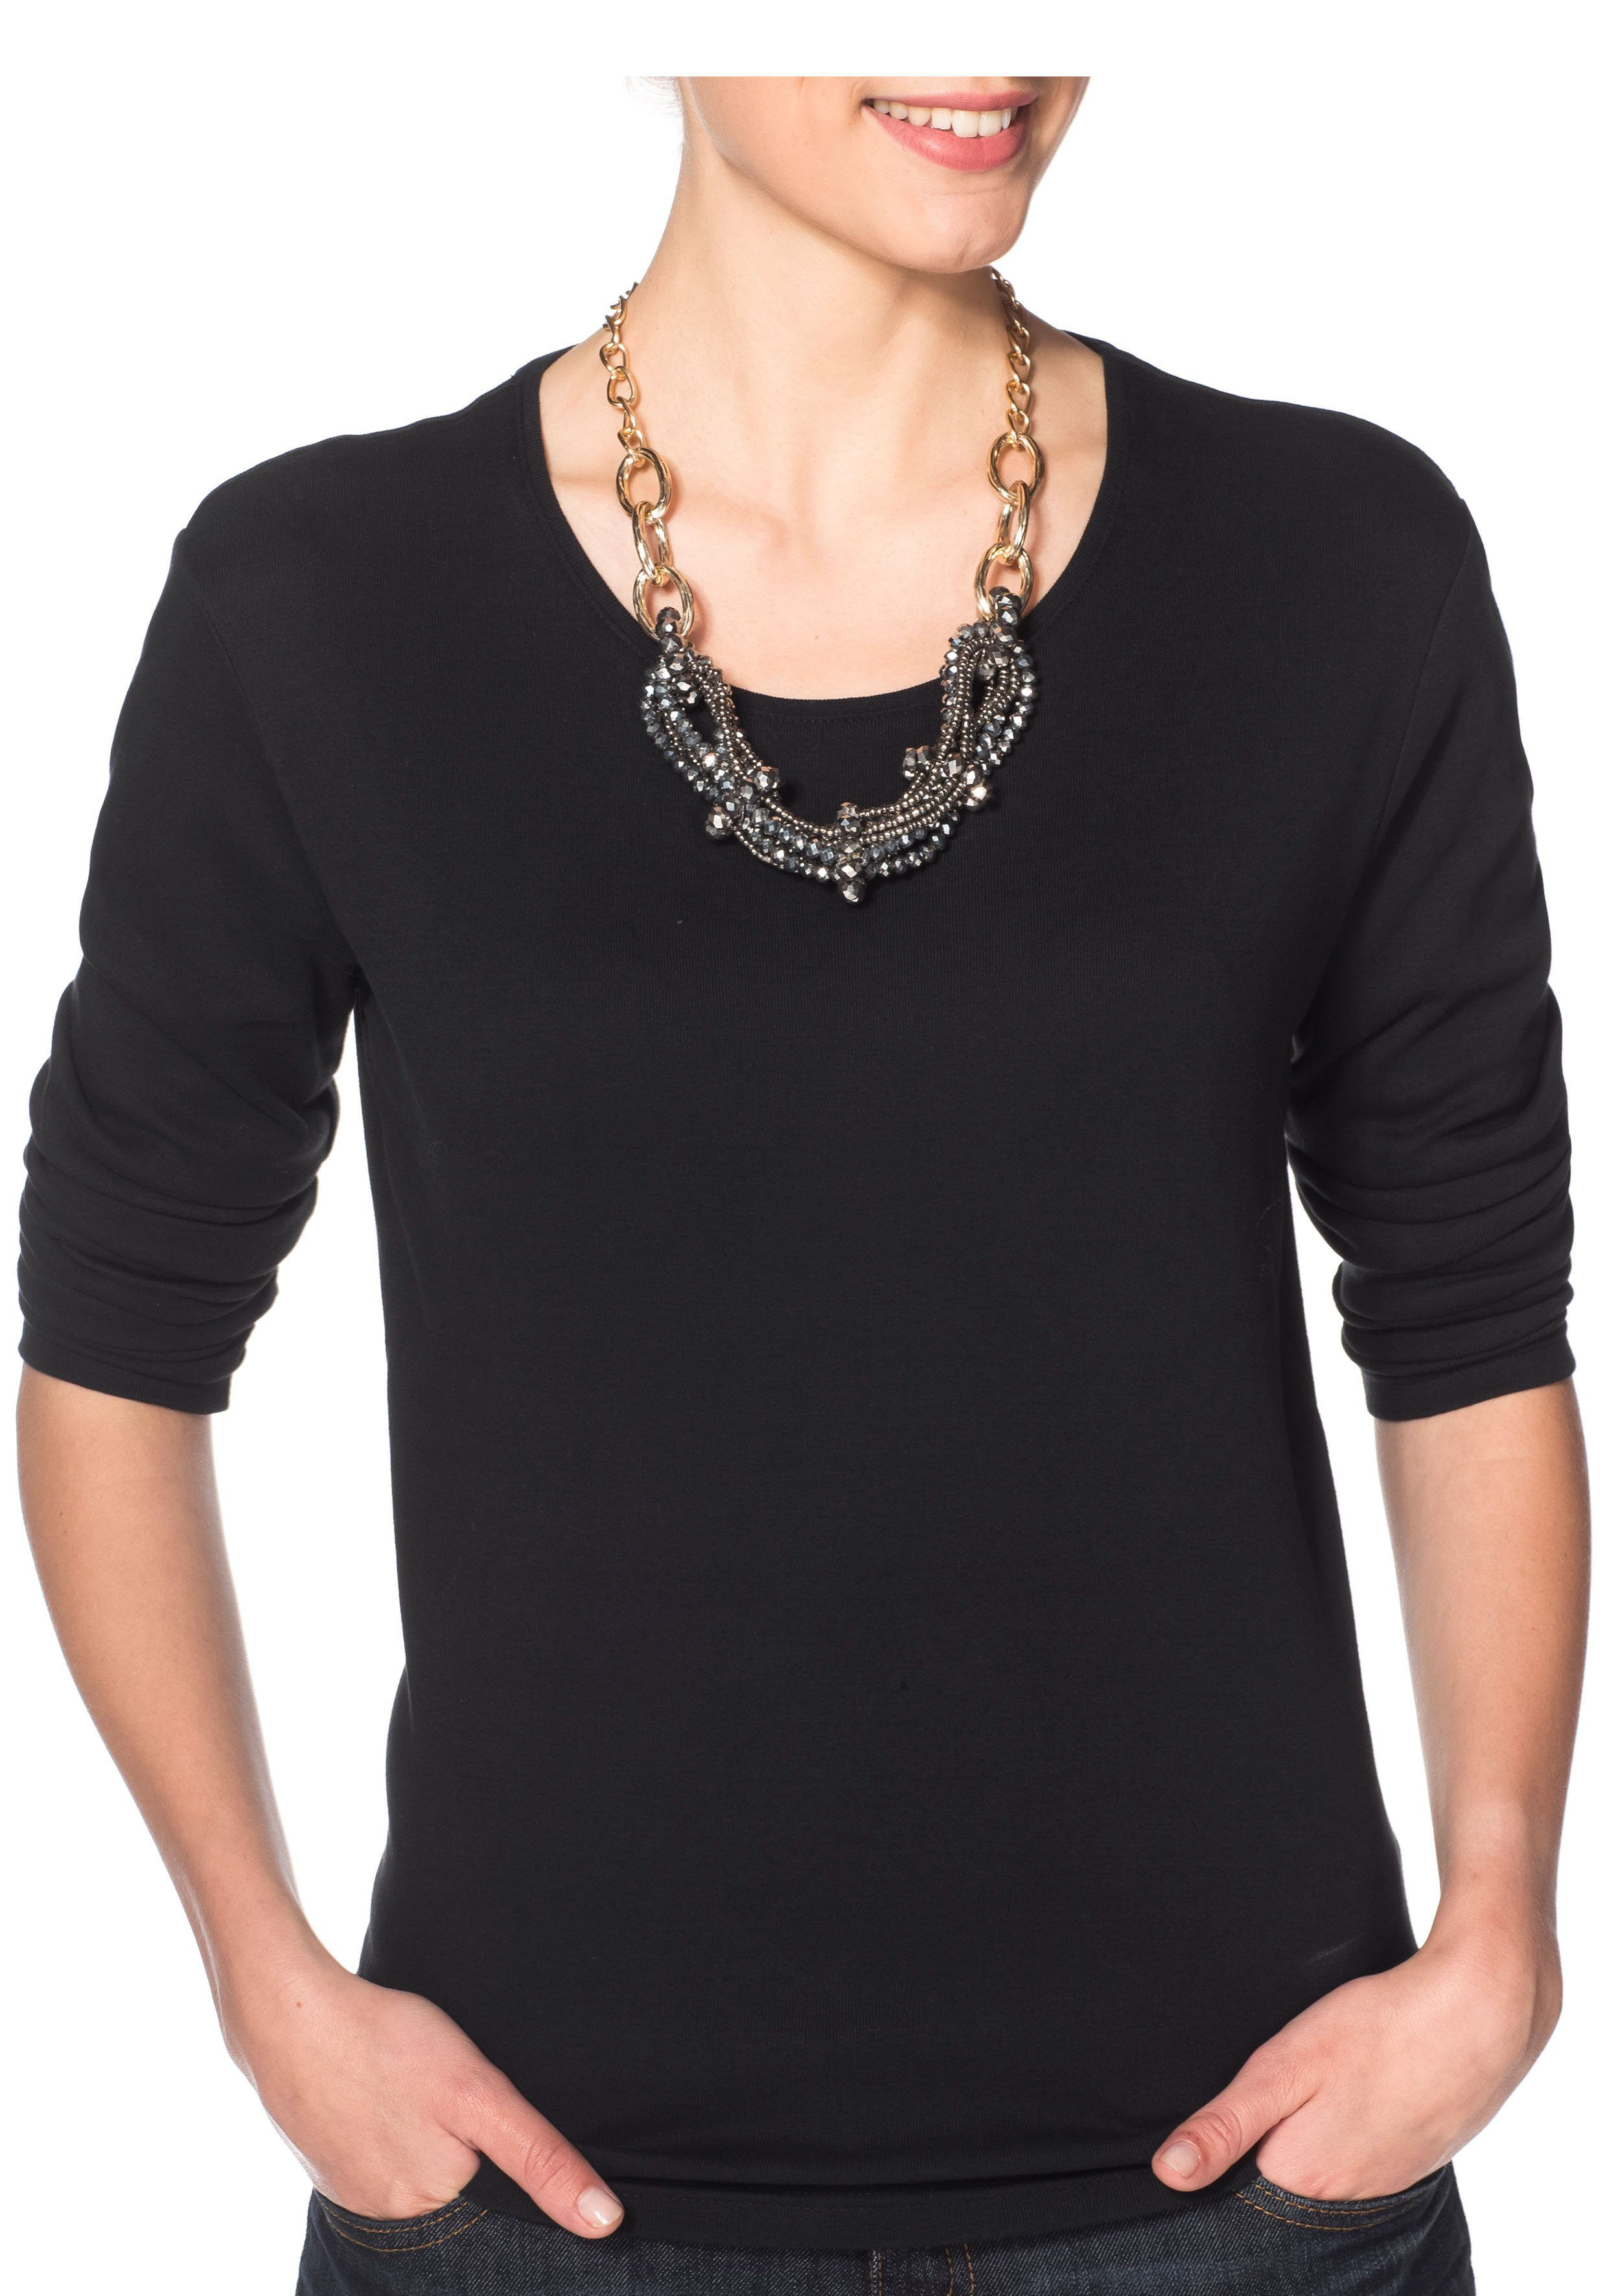 sheego Accessoires Collier, Länge ca. 45 cm